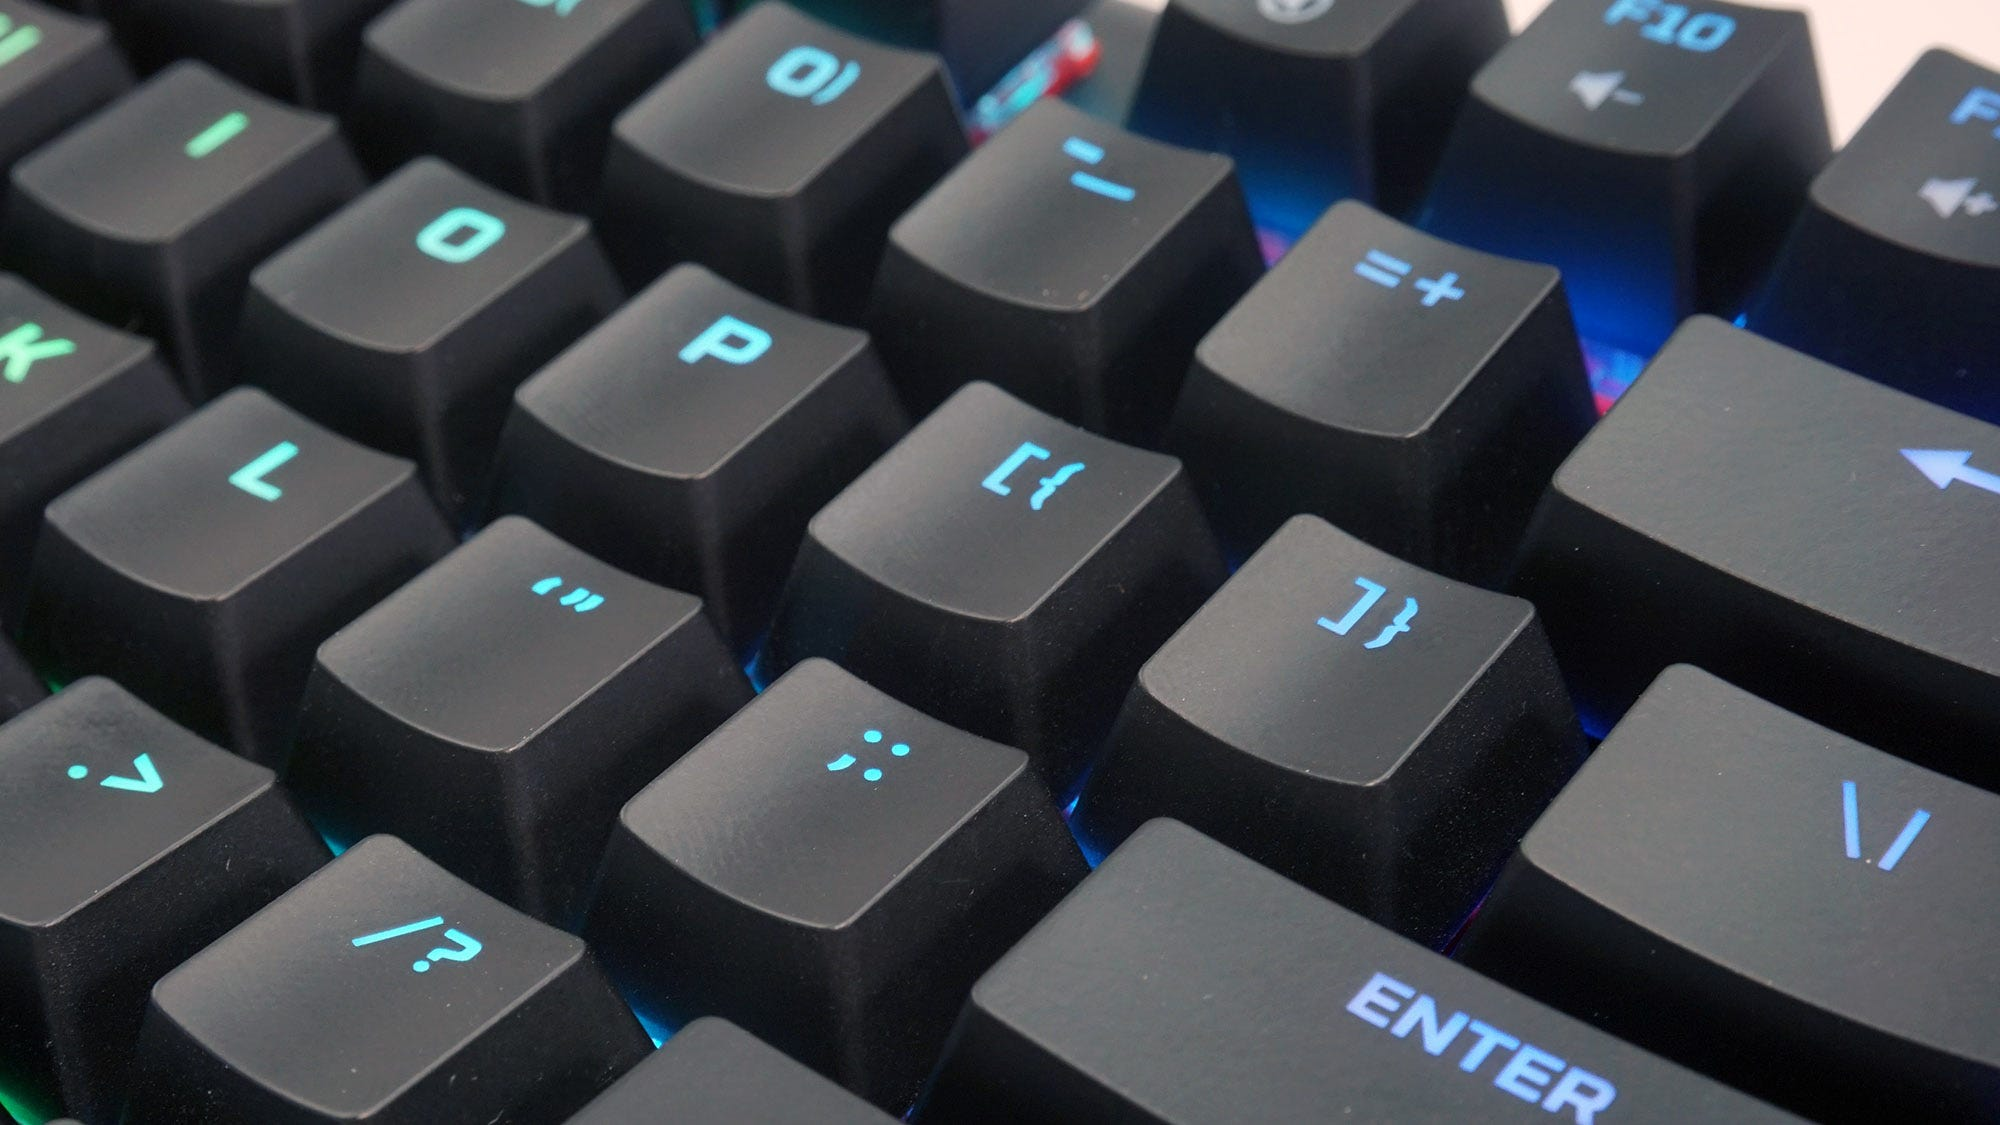 A close-up of the illuminated keycaps